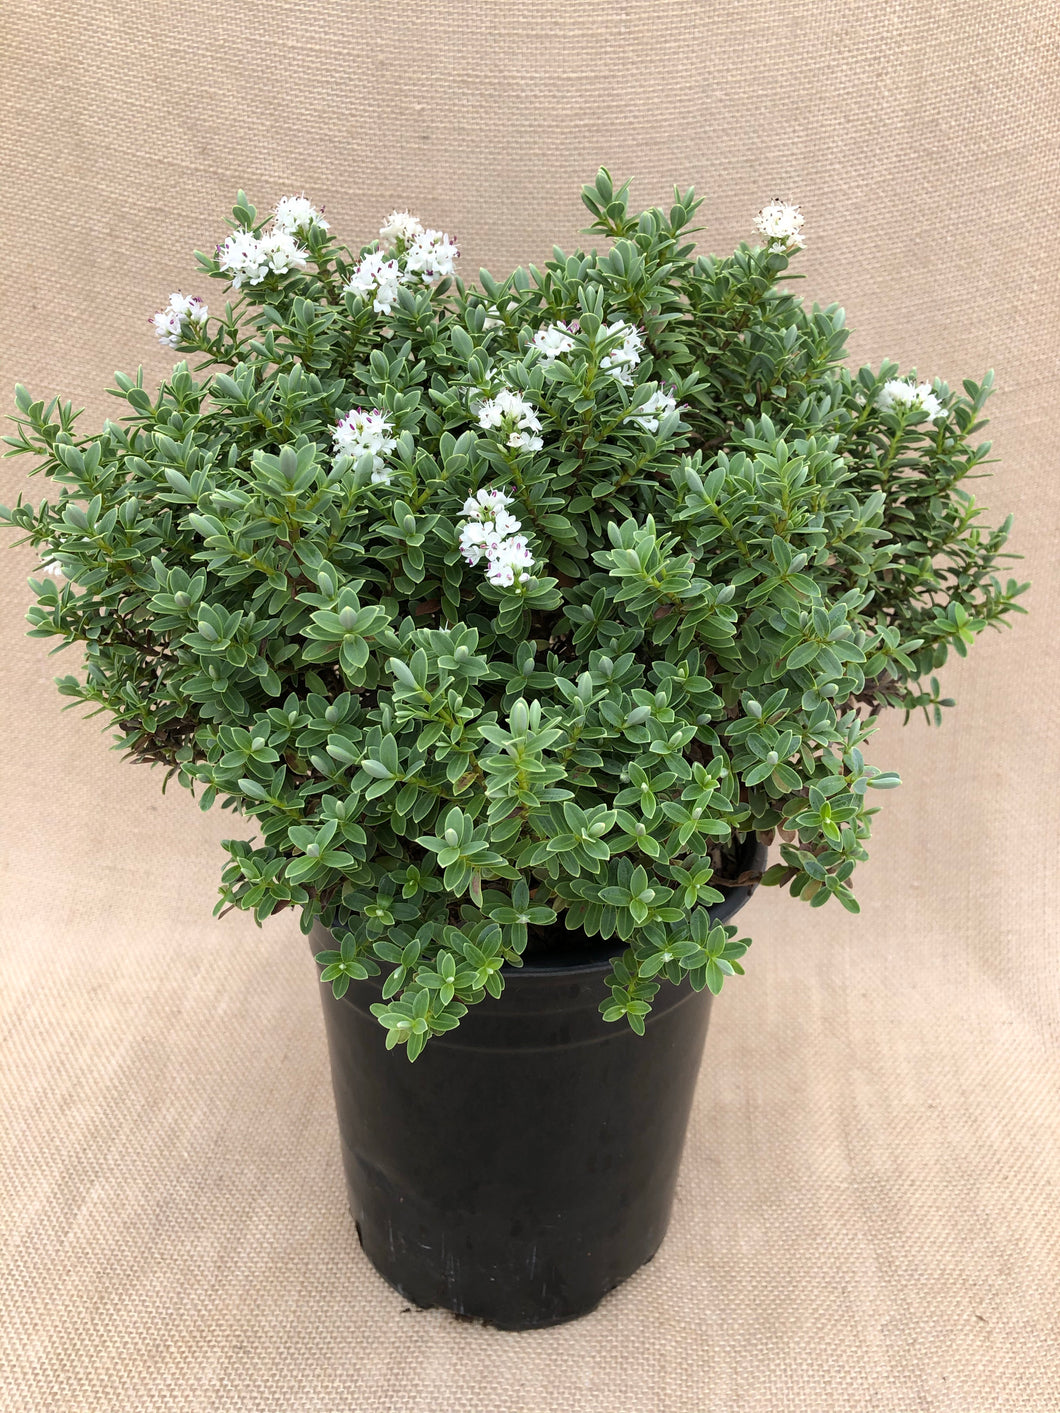 Shrub - Hebe topiaria 'Topiaria' (1 Gallon)